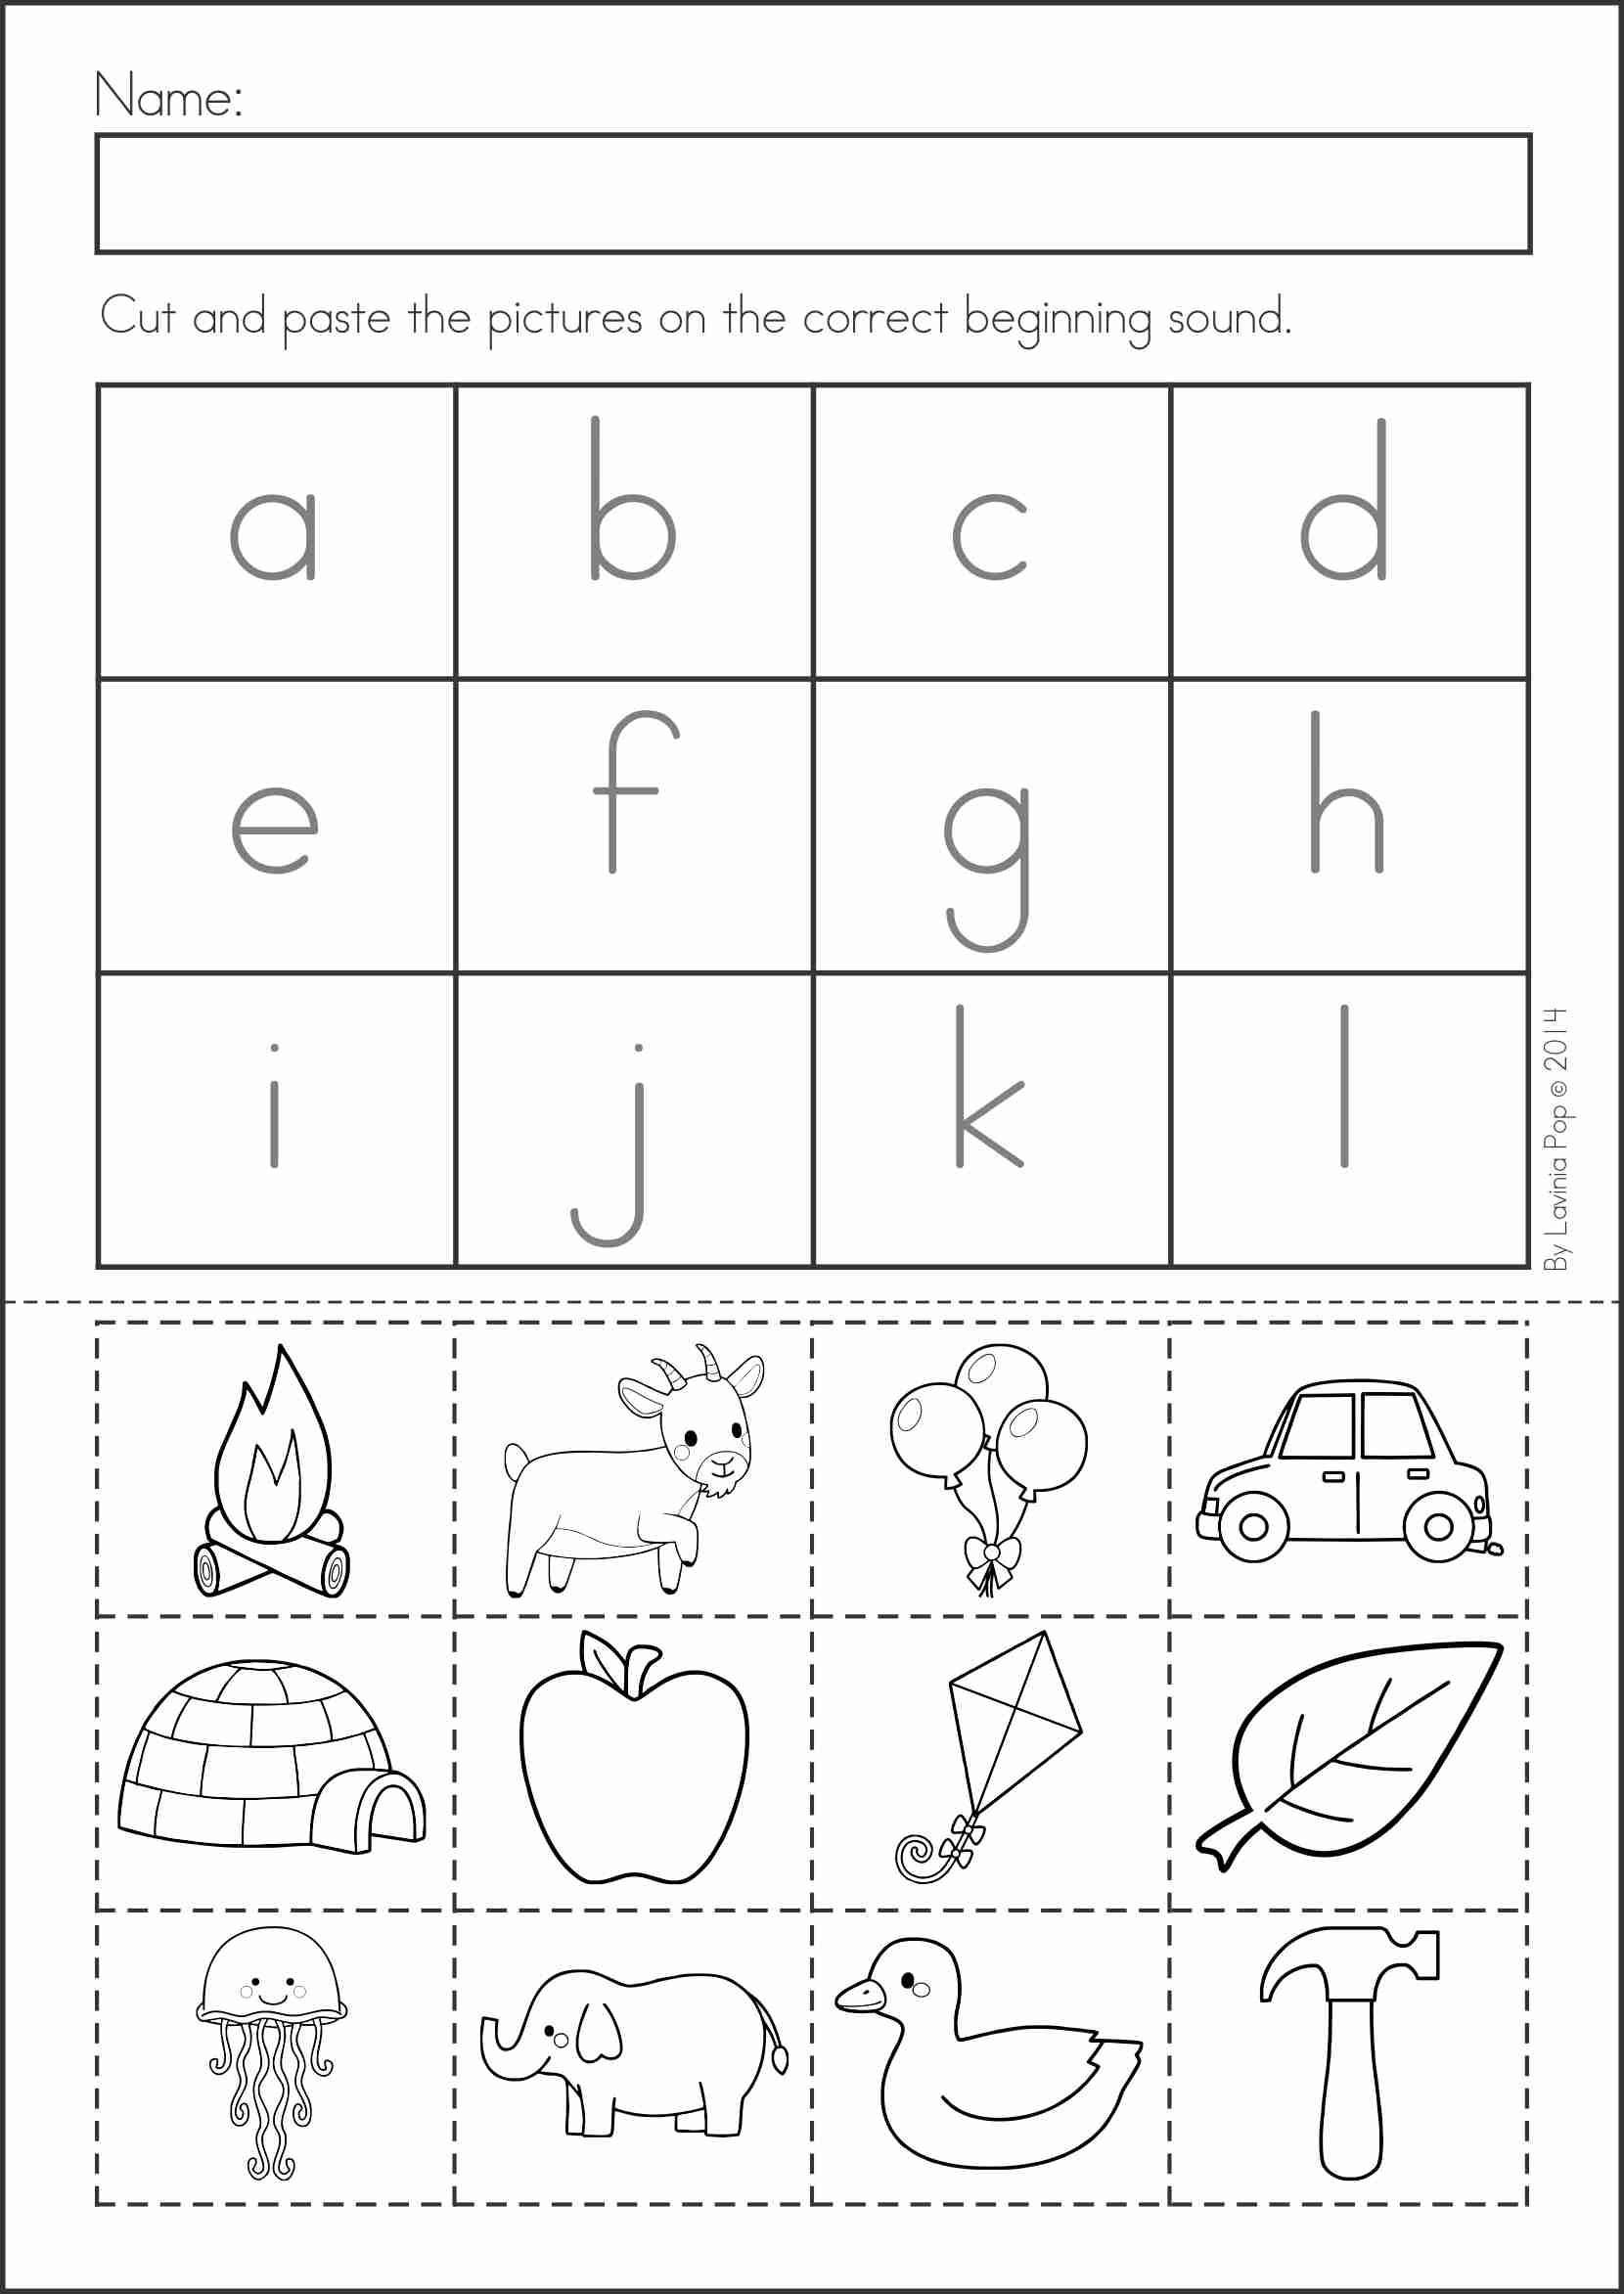 Kindergarten Worksheets Cut and Paste Pin by Joe Hafzar On Educational